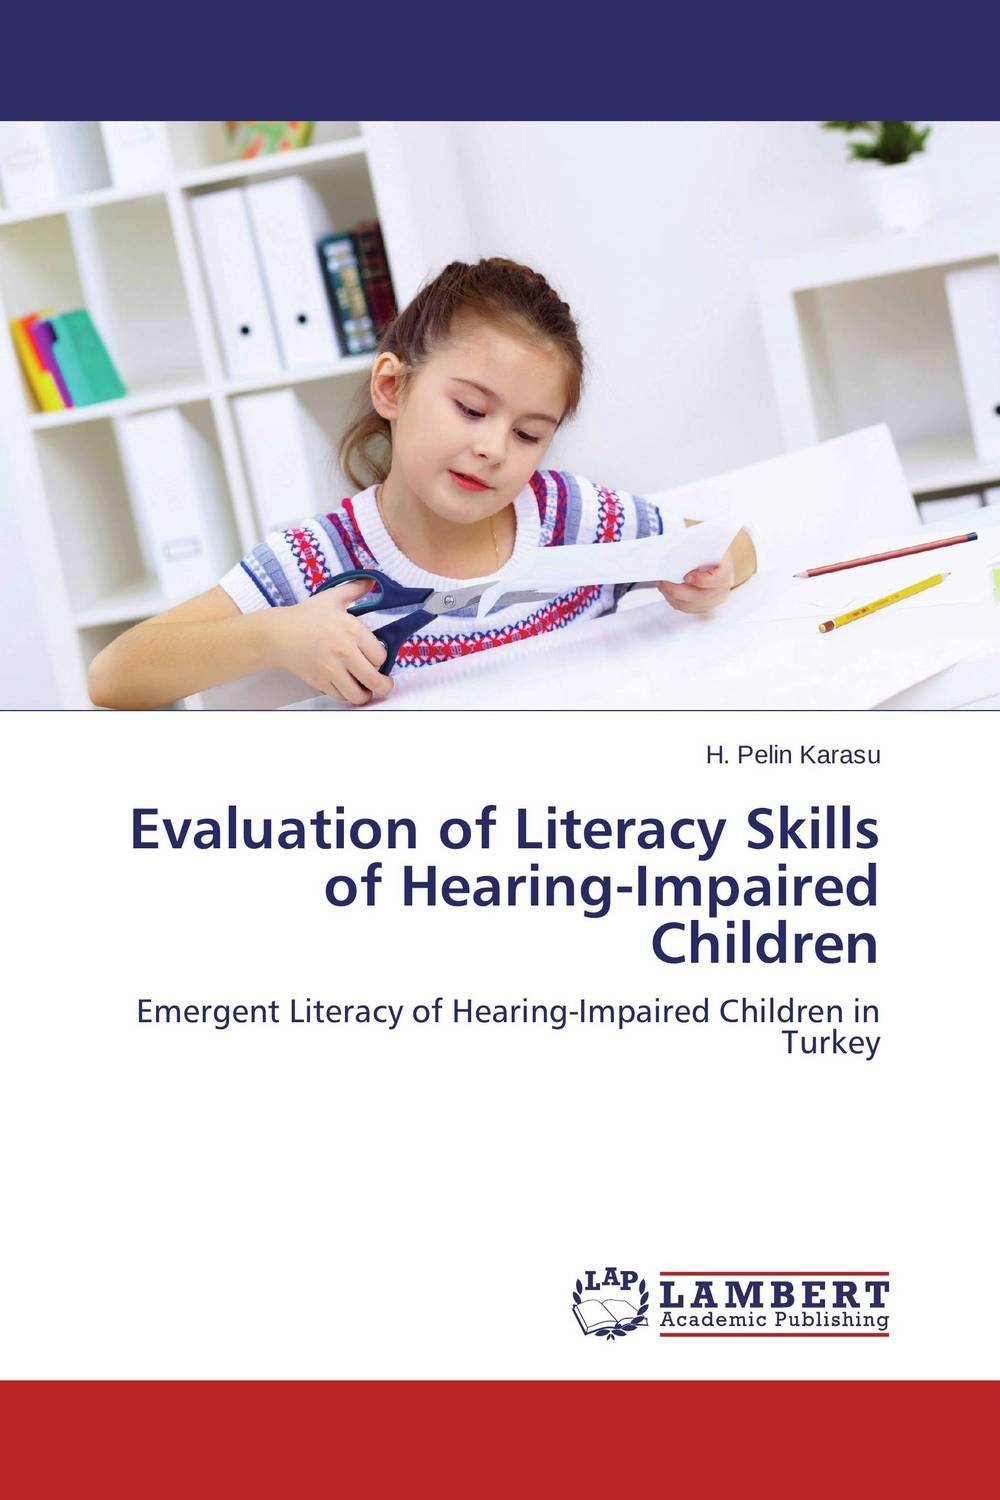 Evaluation of Literacy Skills of Hearing-Impaired Children